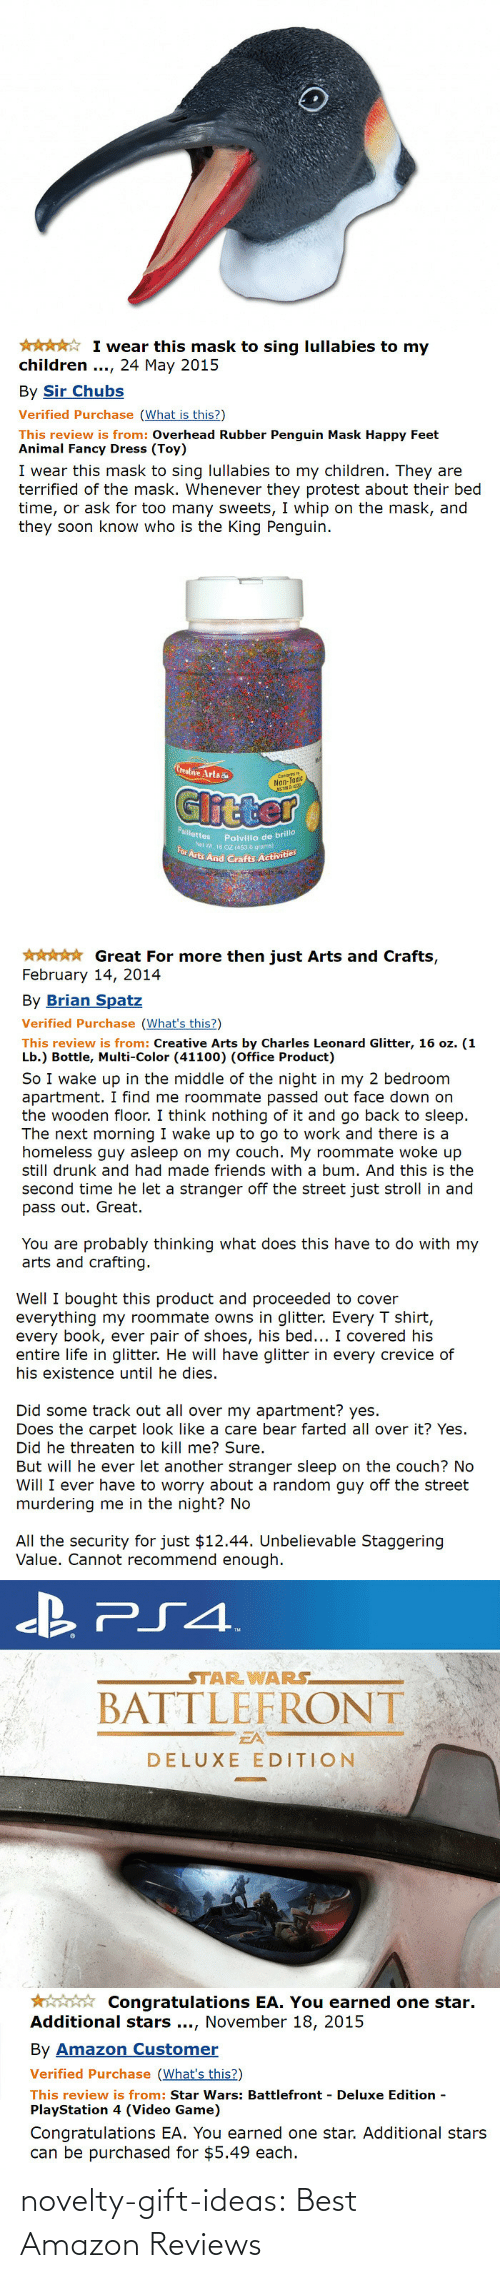 ideas: novelty-gift-ideas: Best Amazon Reviews